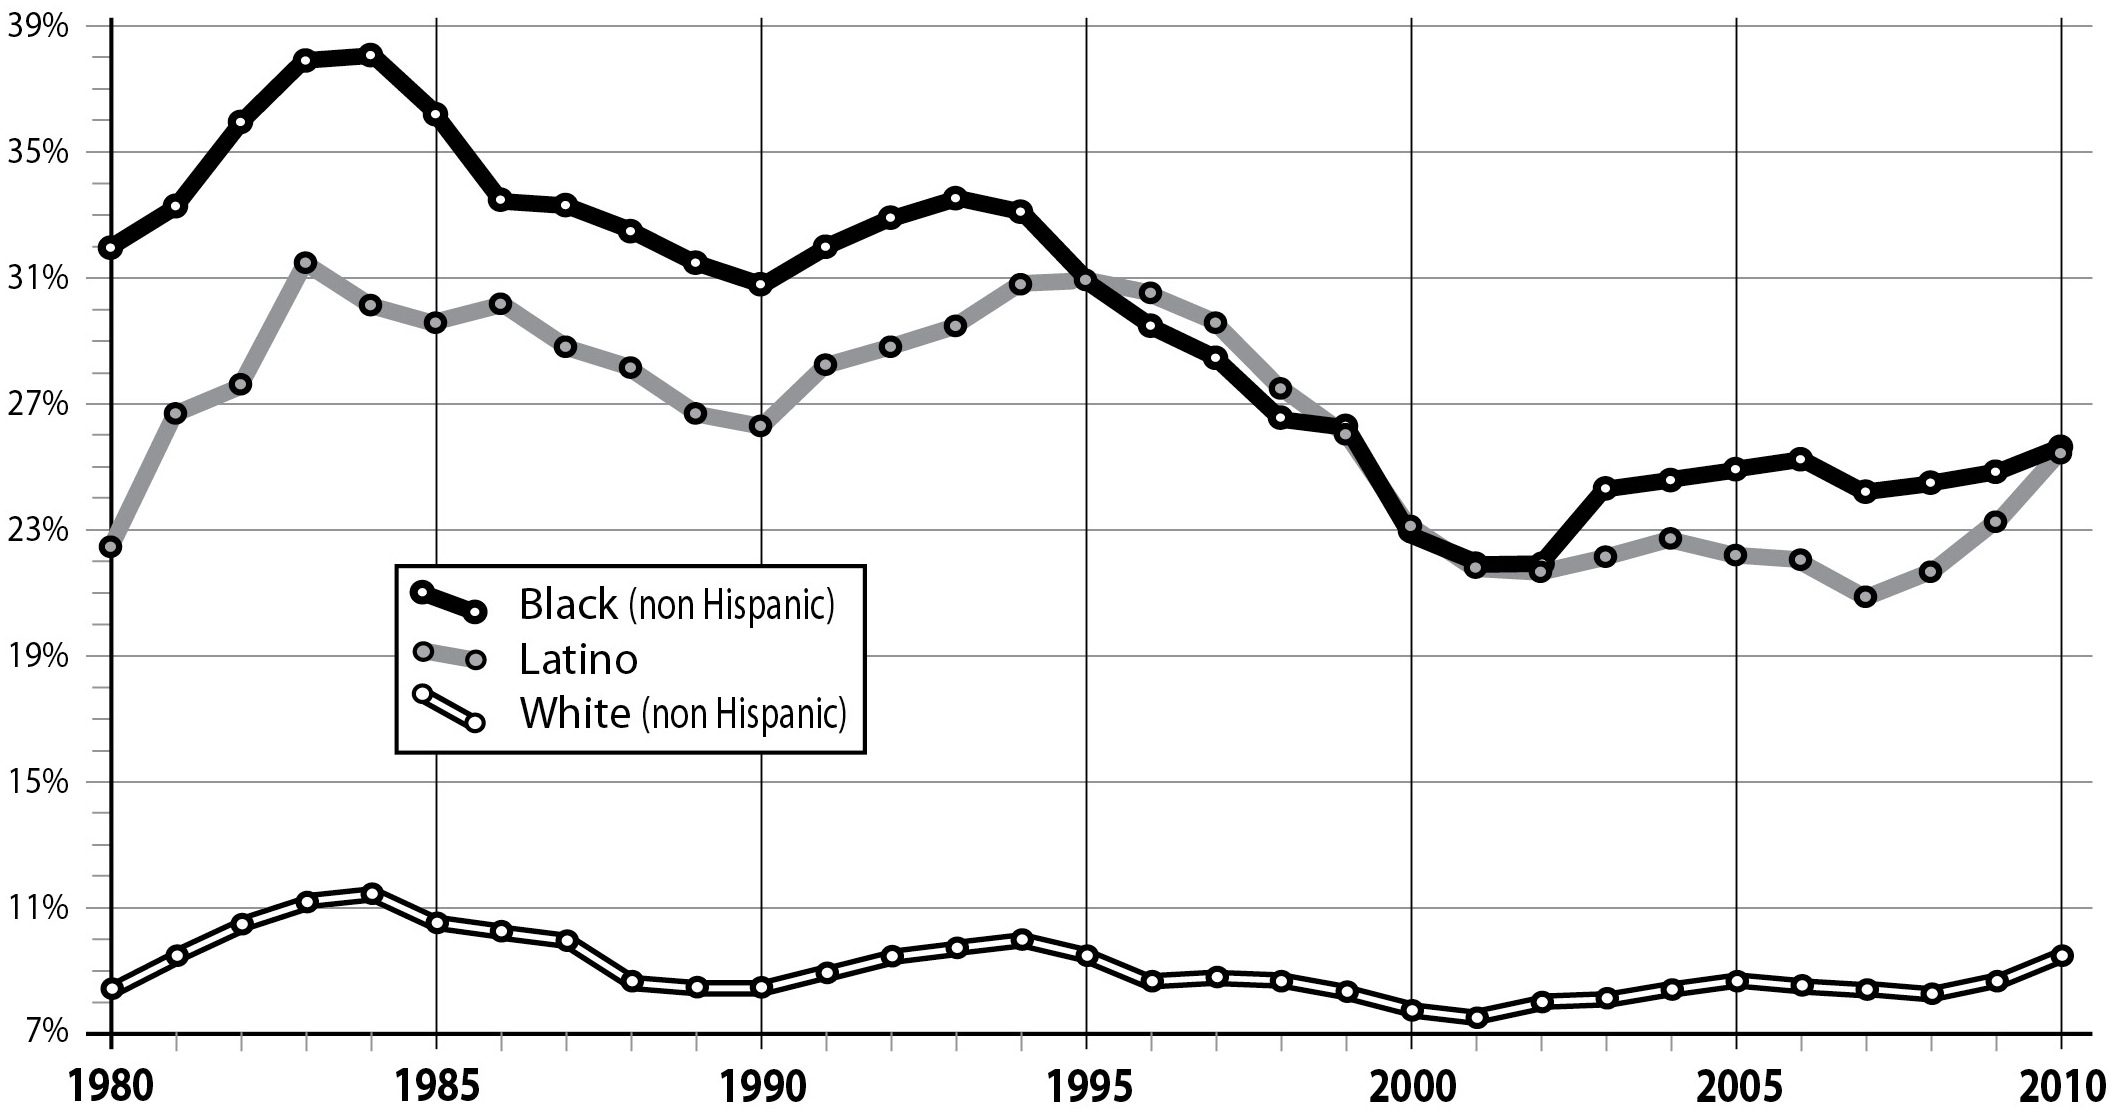 Poverty_Rates_by_Race_1980-2010.jpg